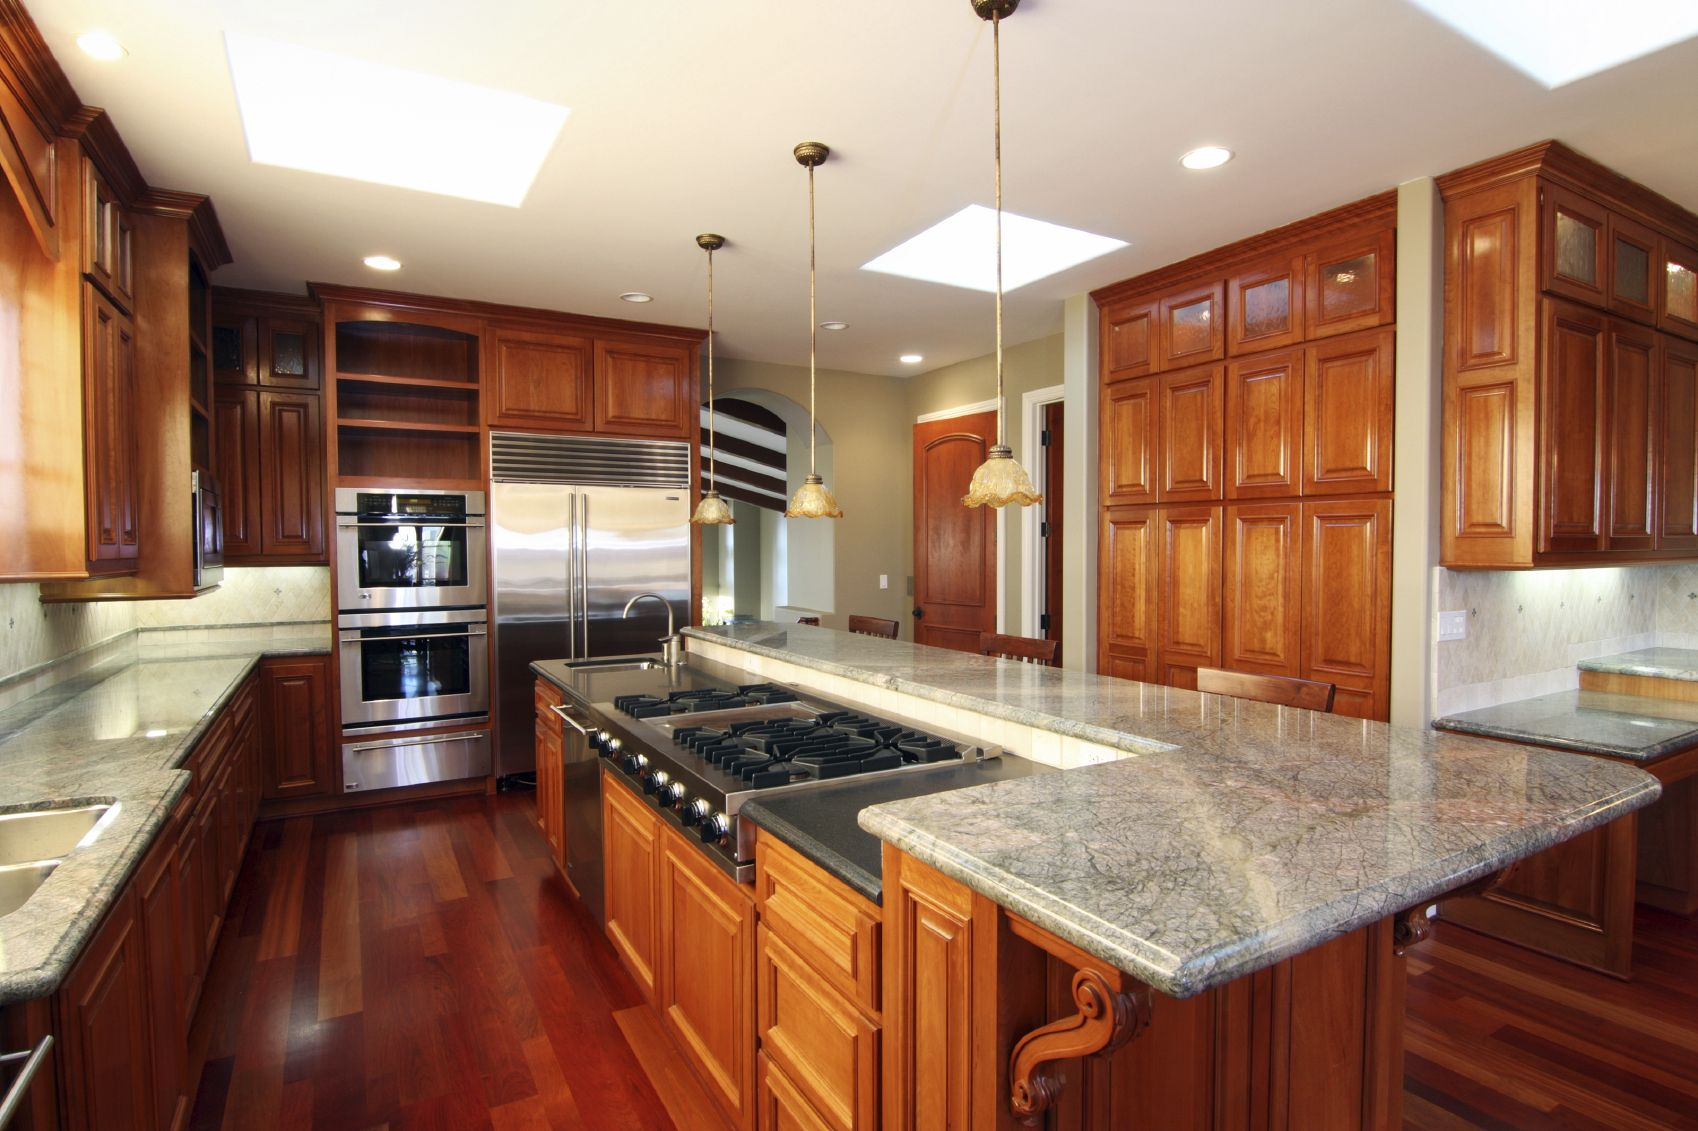 Kitchen Island With Cooktop Sheer Curtains 399 Ideas 2018 Home Pinterest